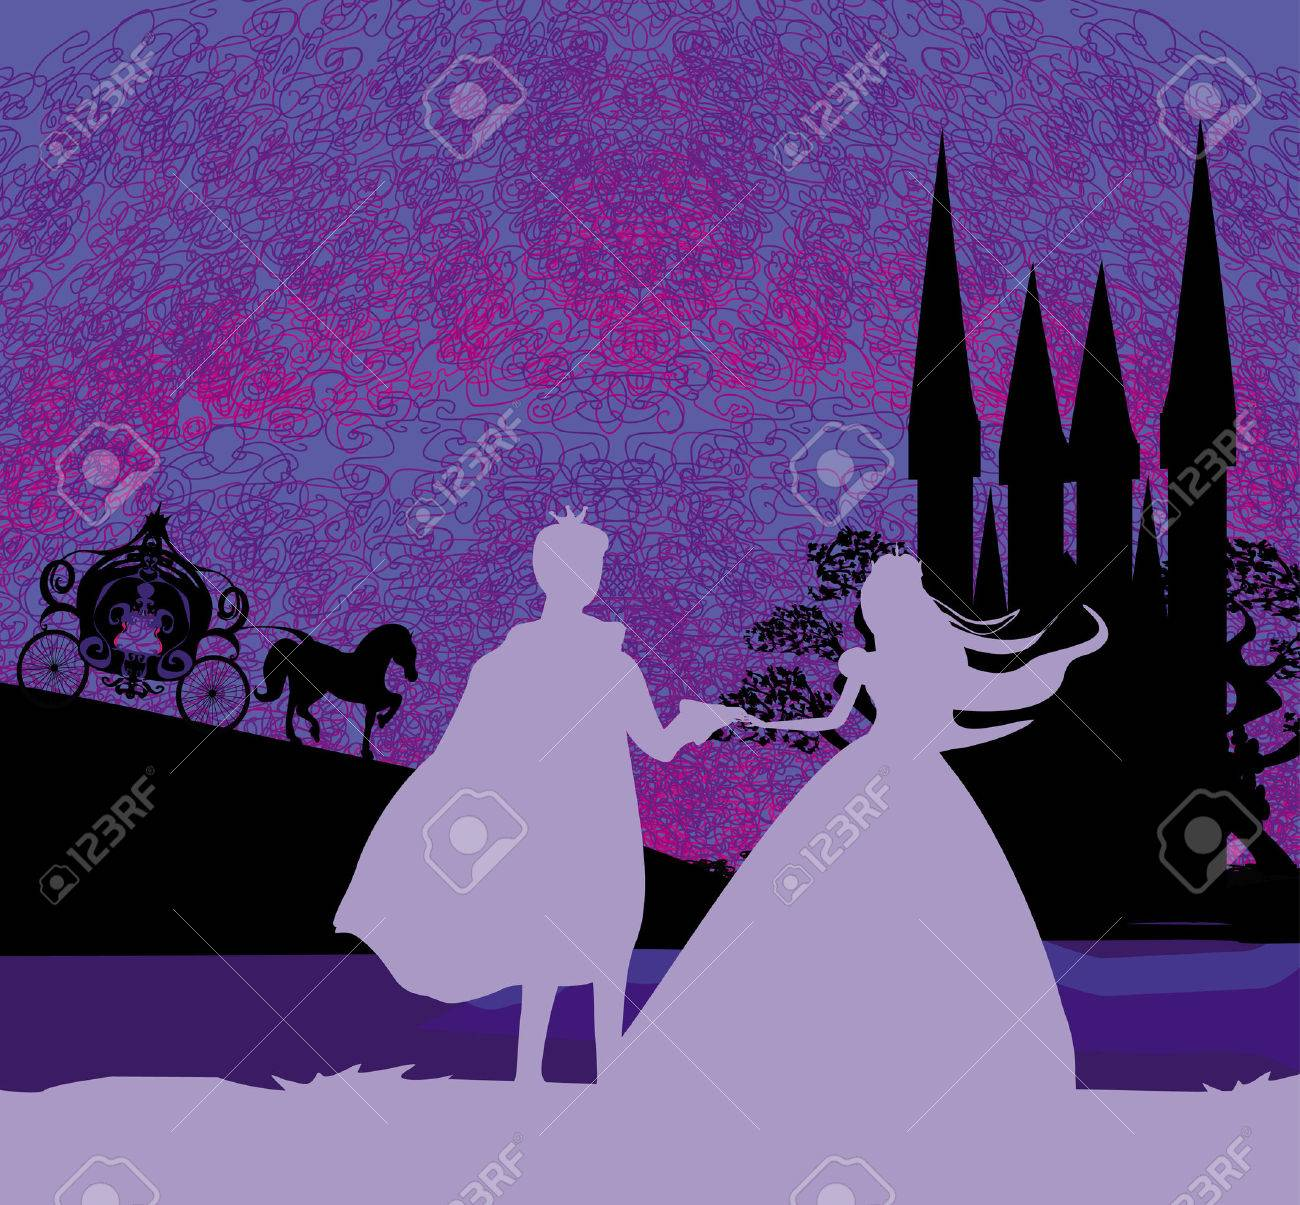 Magic castle and princess with prince - 33796804